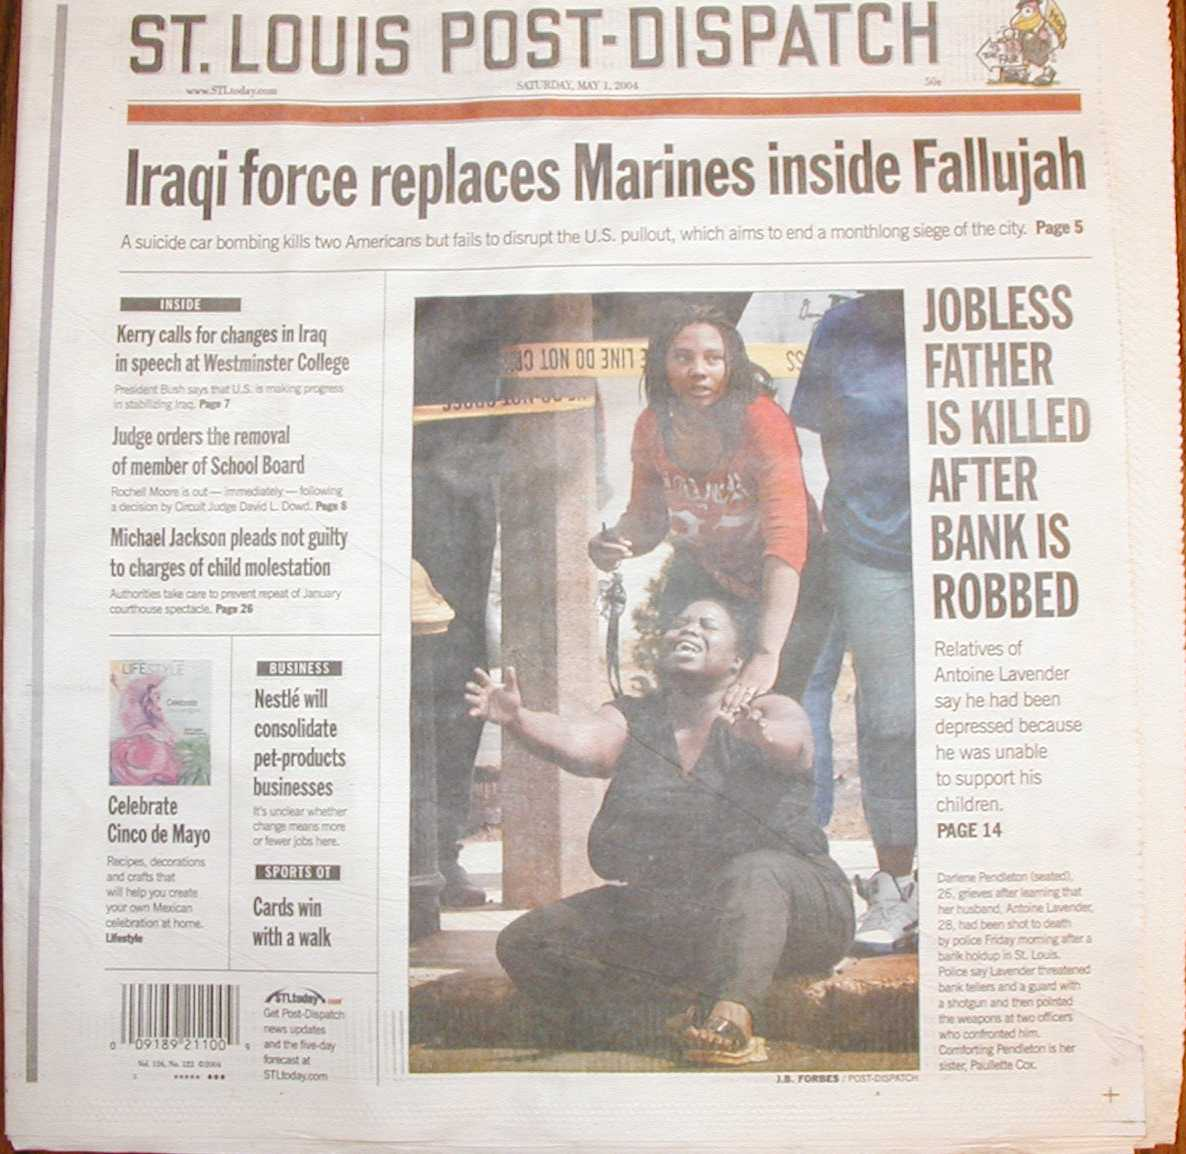 Post-Dispatch early edition